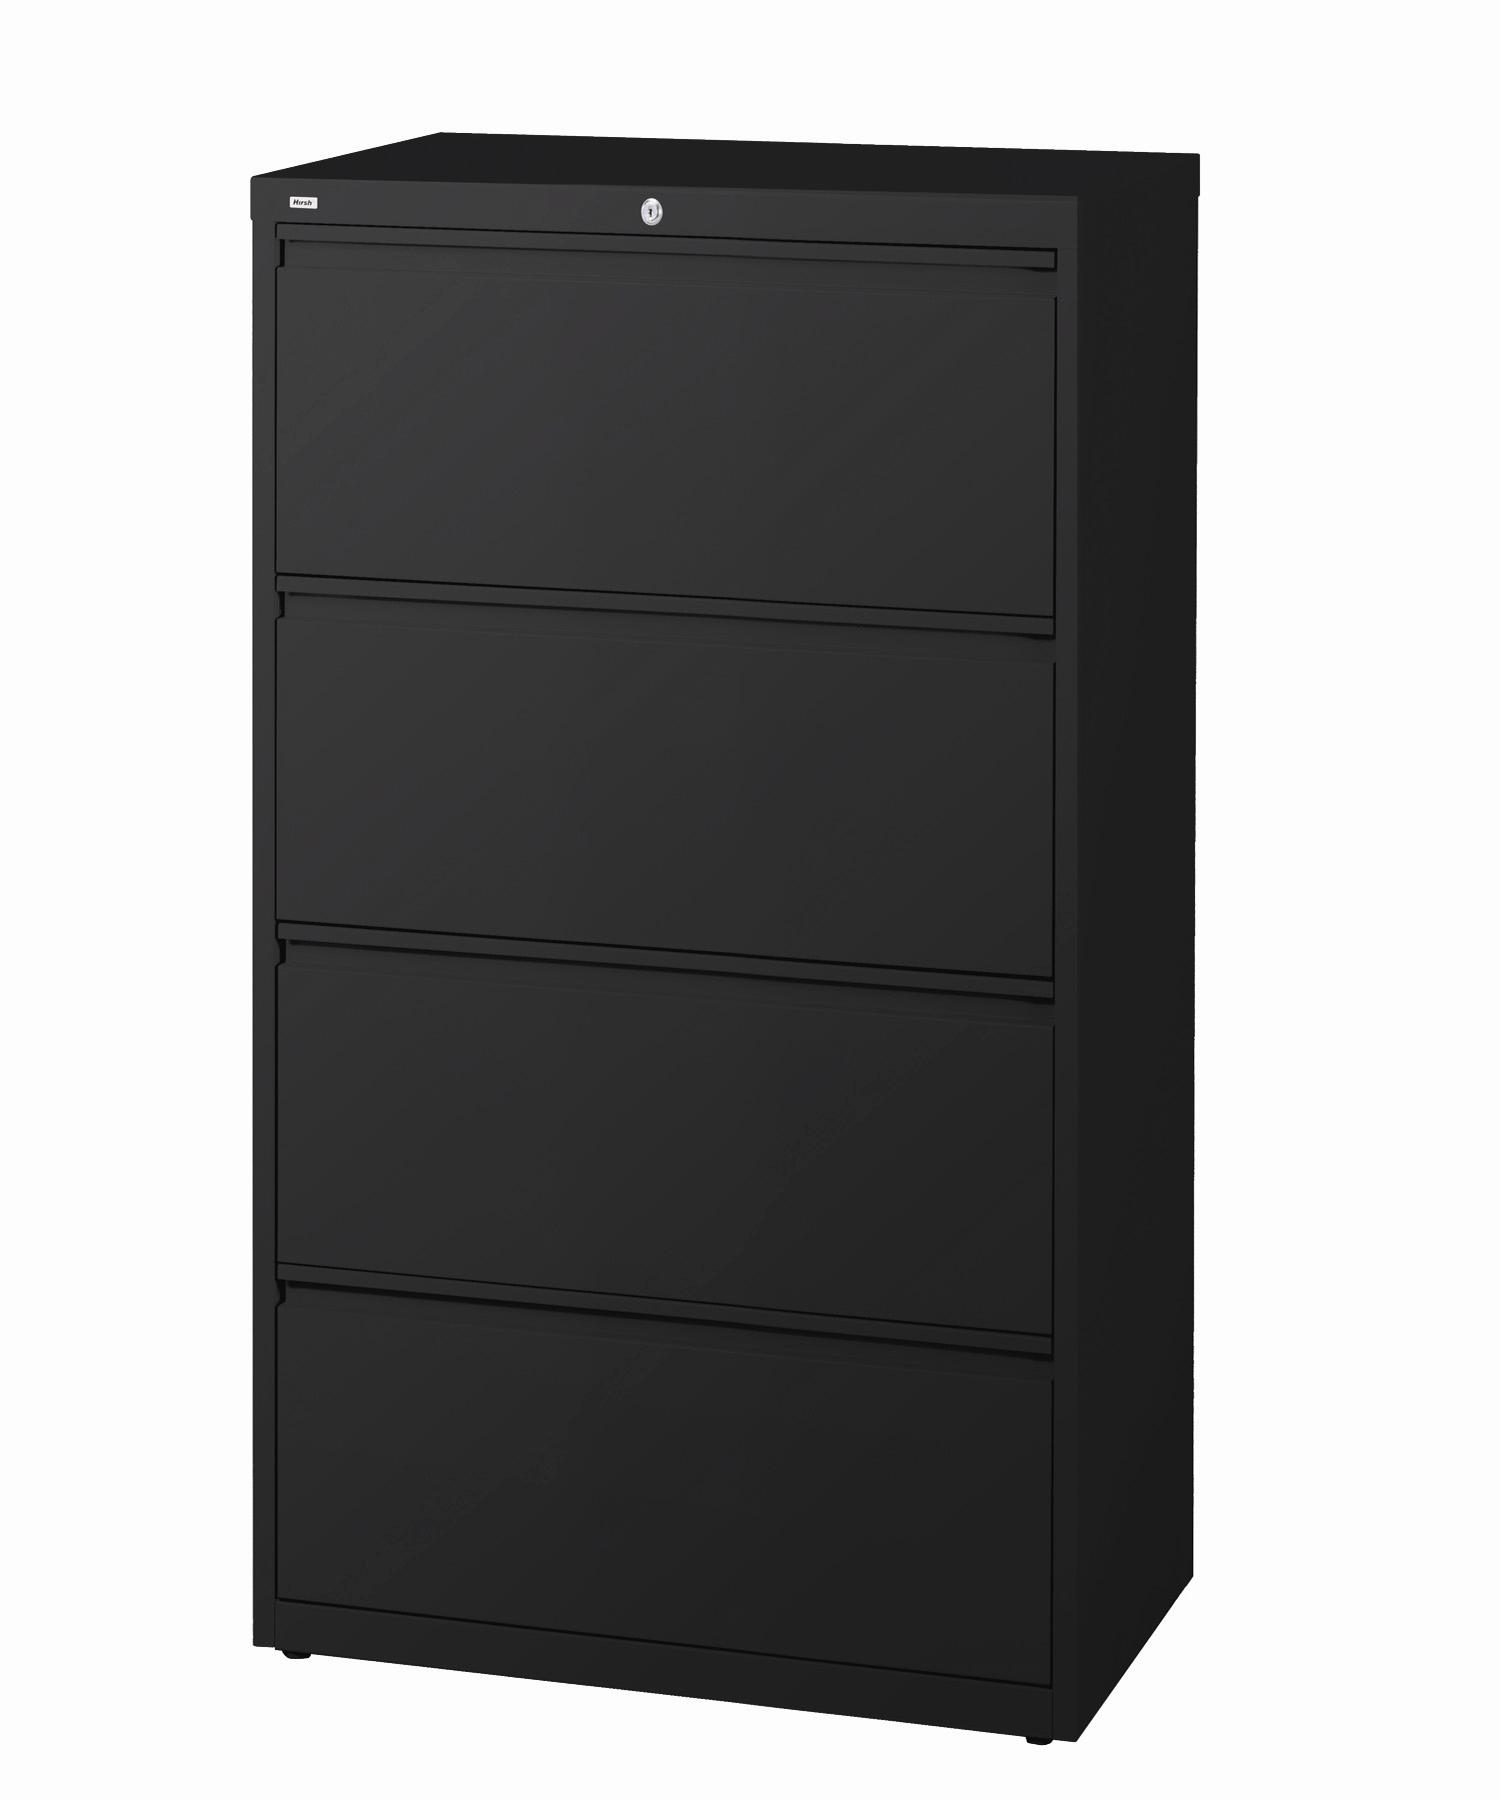 ... Hirsh HL10000 Series 30-inch Wide 4-drawer Commercial Lateral File  Cabinet ...